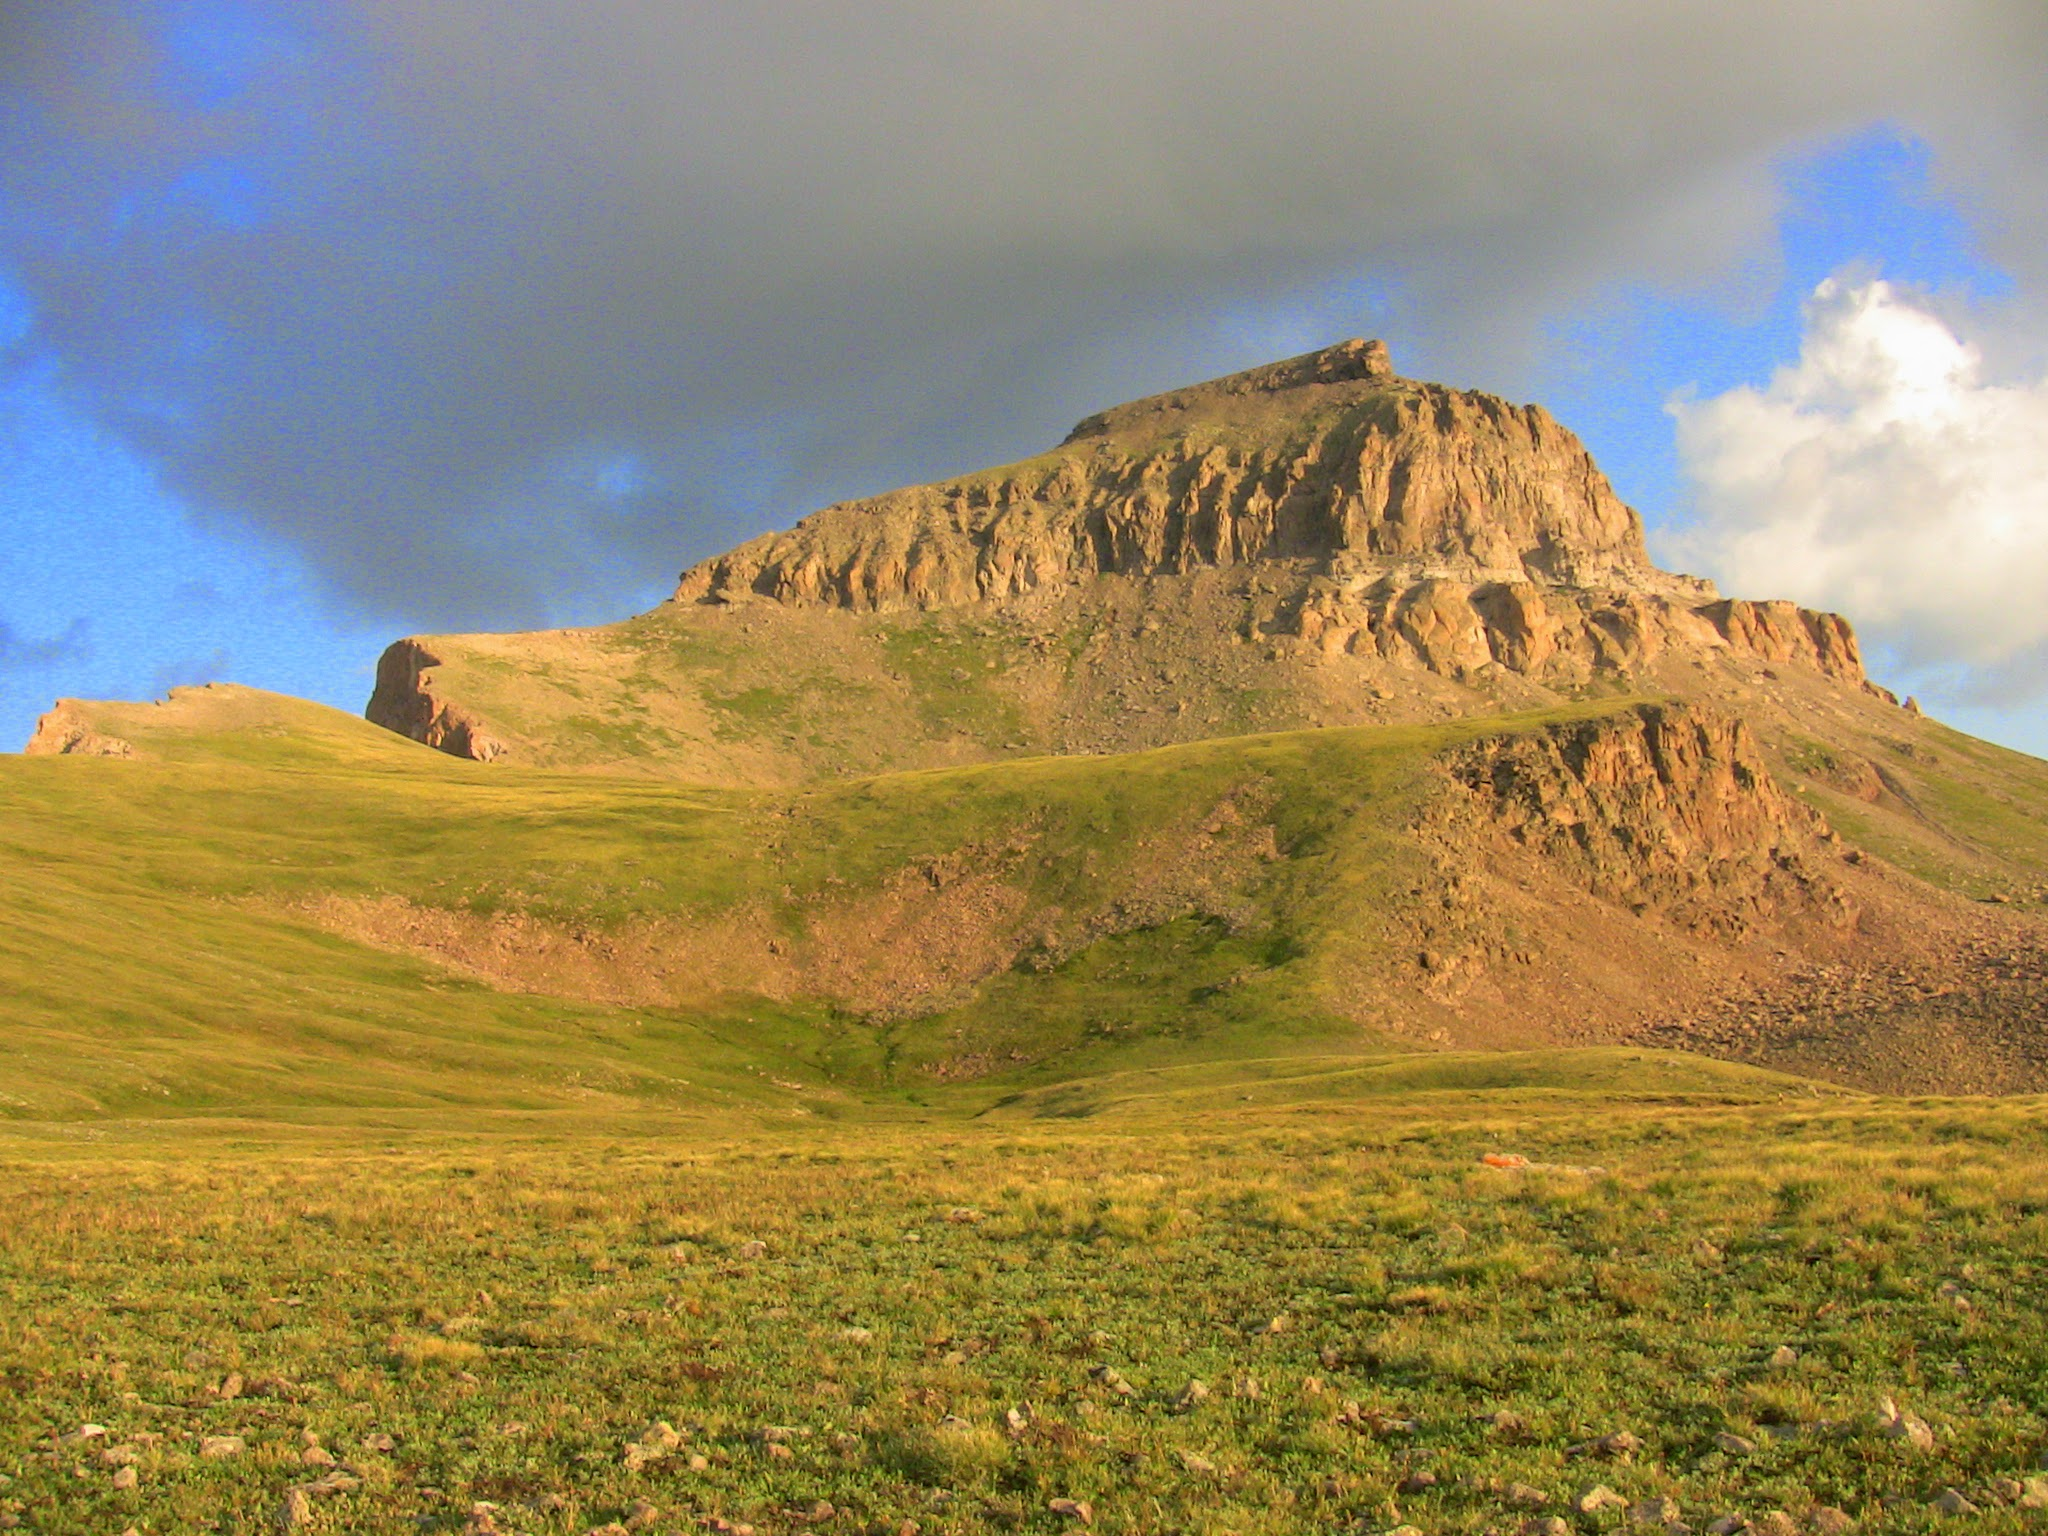 Parting Sot of Uncompahgre